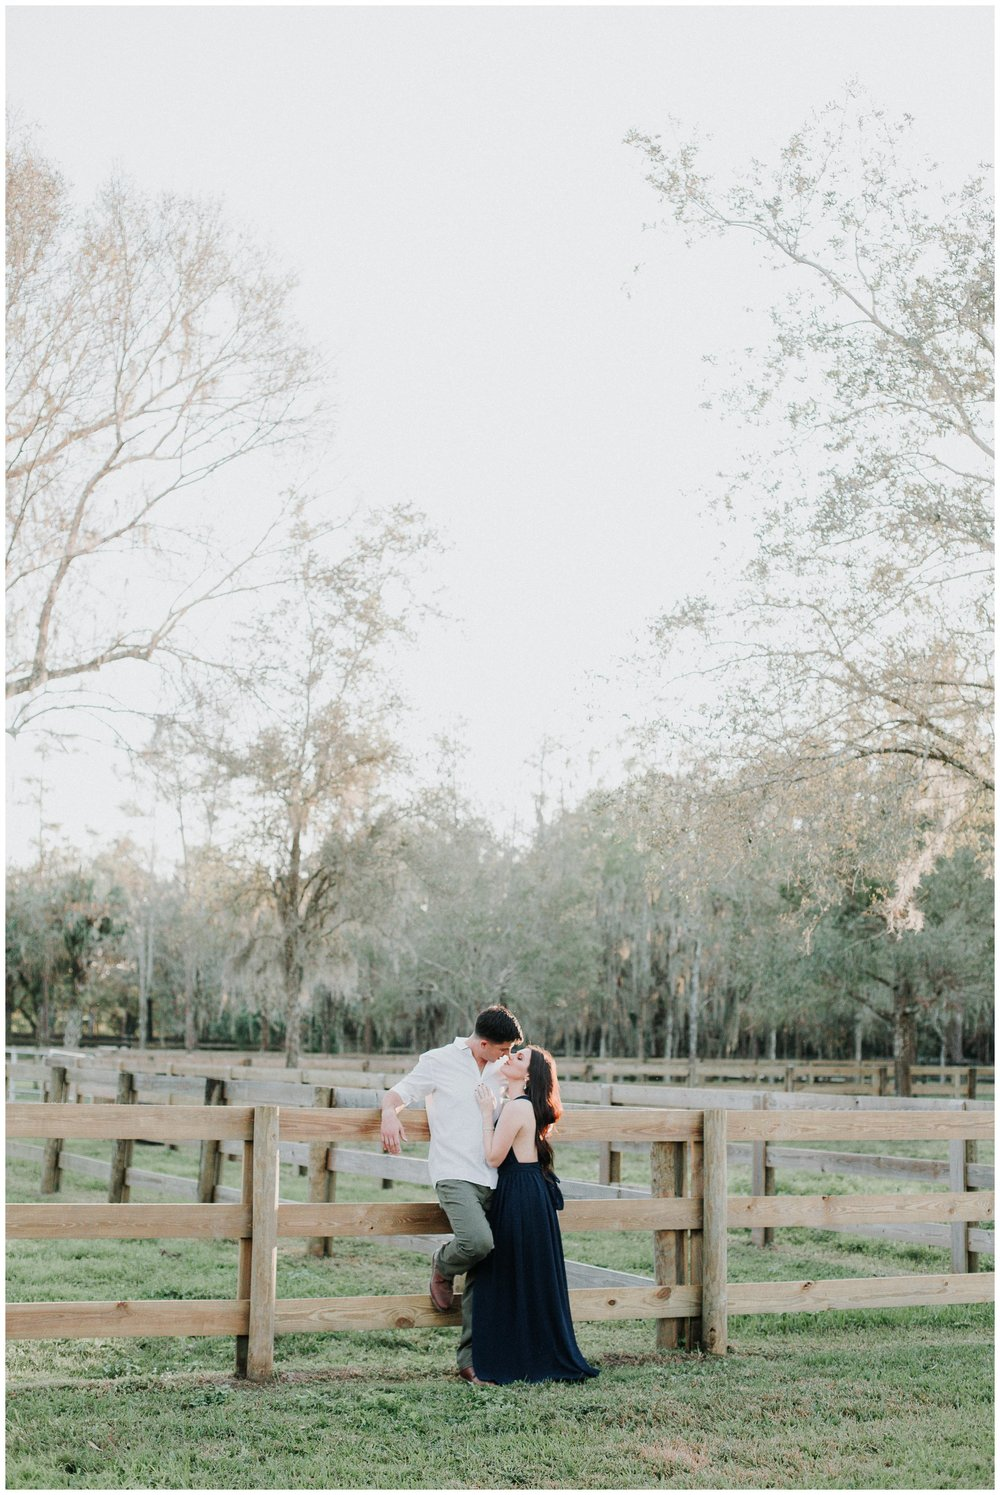 BMR Stables Wedding-BMR Stables Engagement Session-Jupiter Wedding Photographer-South Florida Wedding Photographer-Palm Beach Wedding Photographer-Jupiter Engagement Photos- Kimberly Smith Photography_0026.jpg